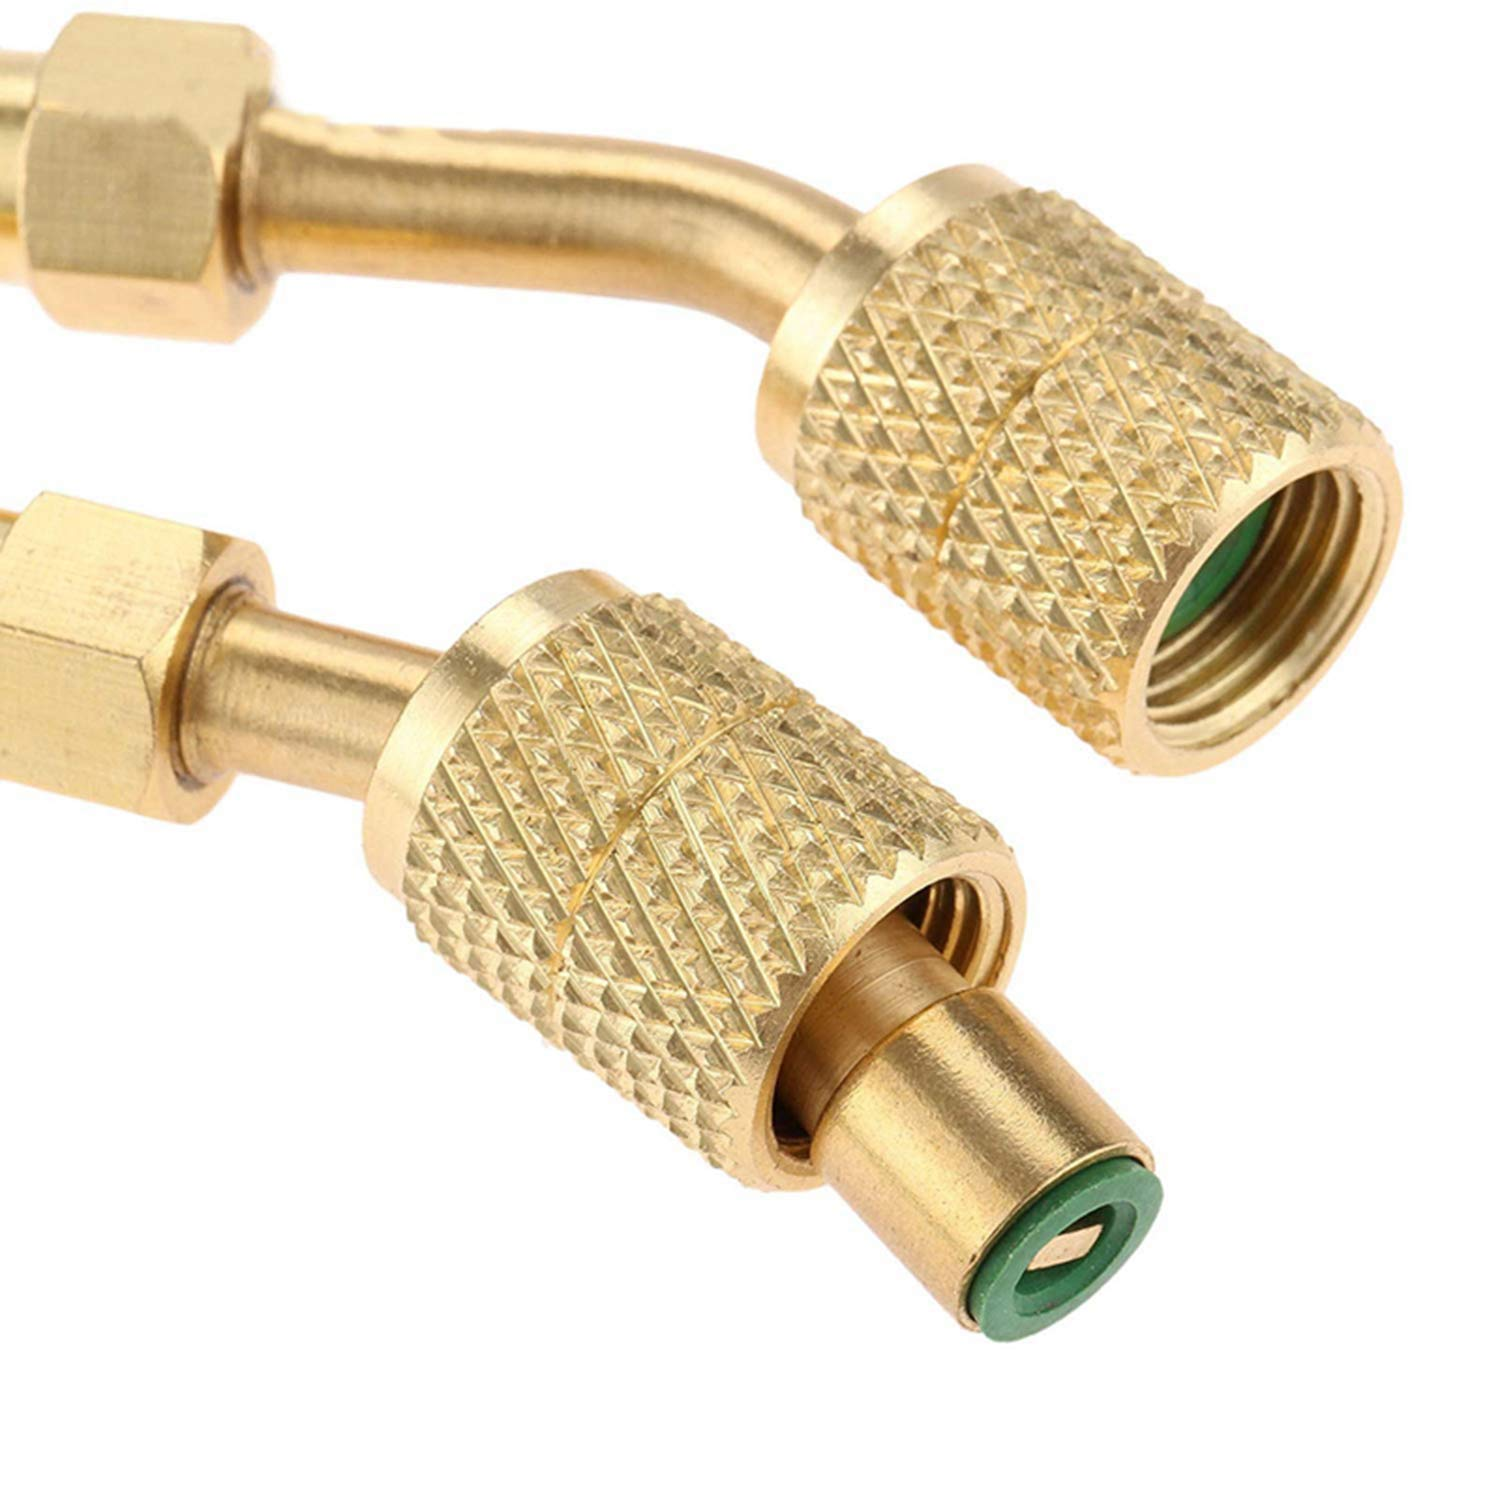 Air Conditioners HVAC and Refriger 3PCS R410a Adapter Charging Vacuum Port Adapter Brass Converter with Thimble 5//16 Inch SAE Female Quick Couplers to 1//4 Inch SAE Male Flare for Mini Split System